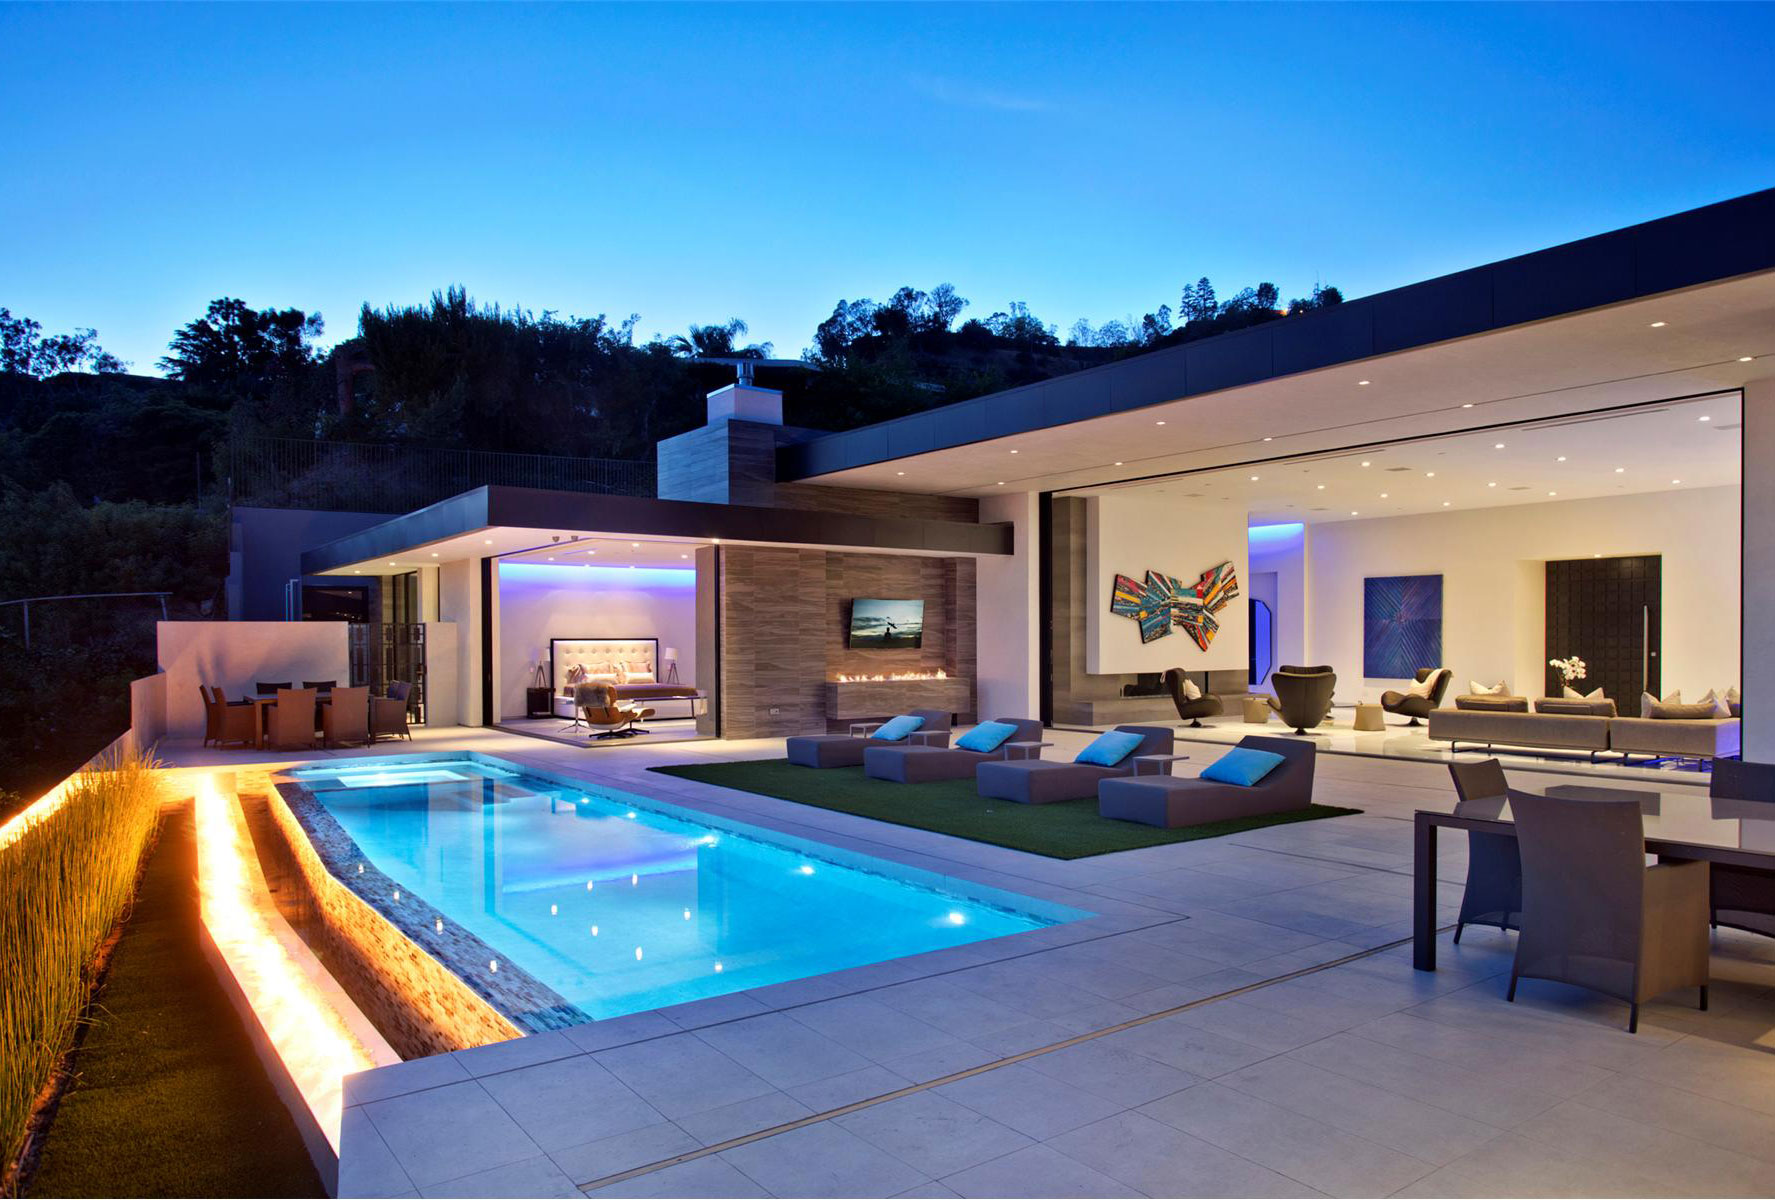 The home's BBQ area includes an outdoor television—just one of the home's many screens.